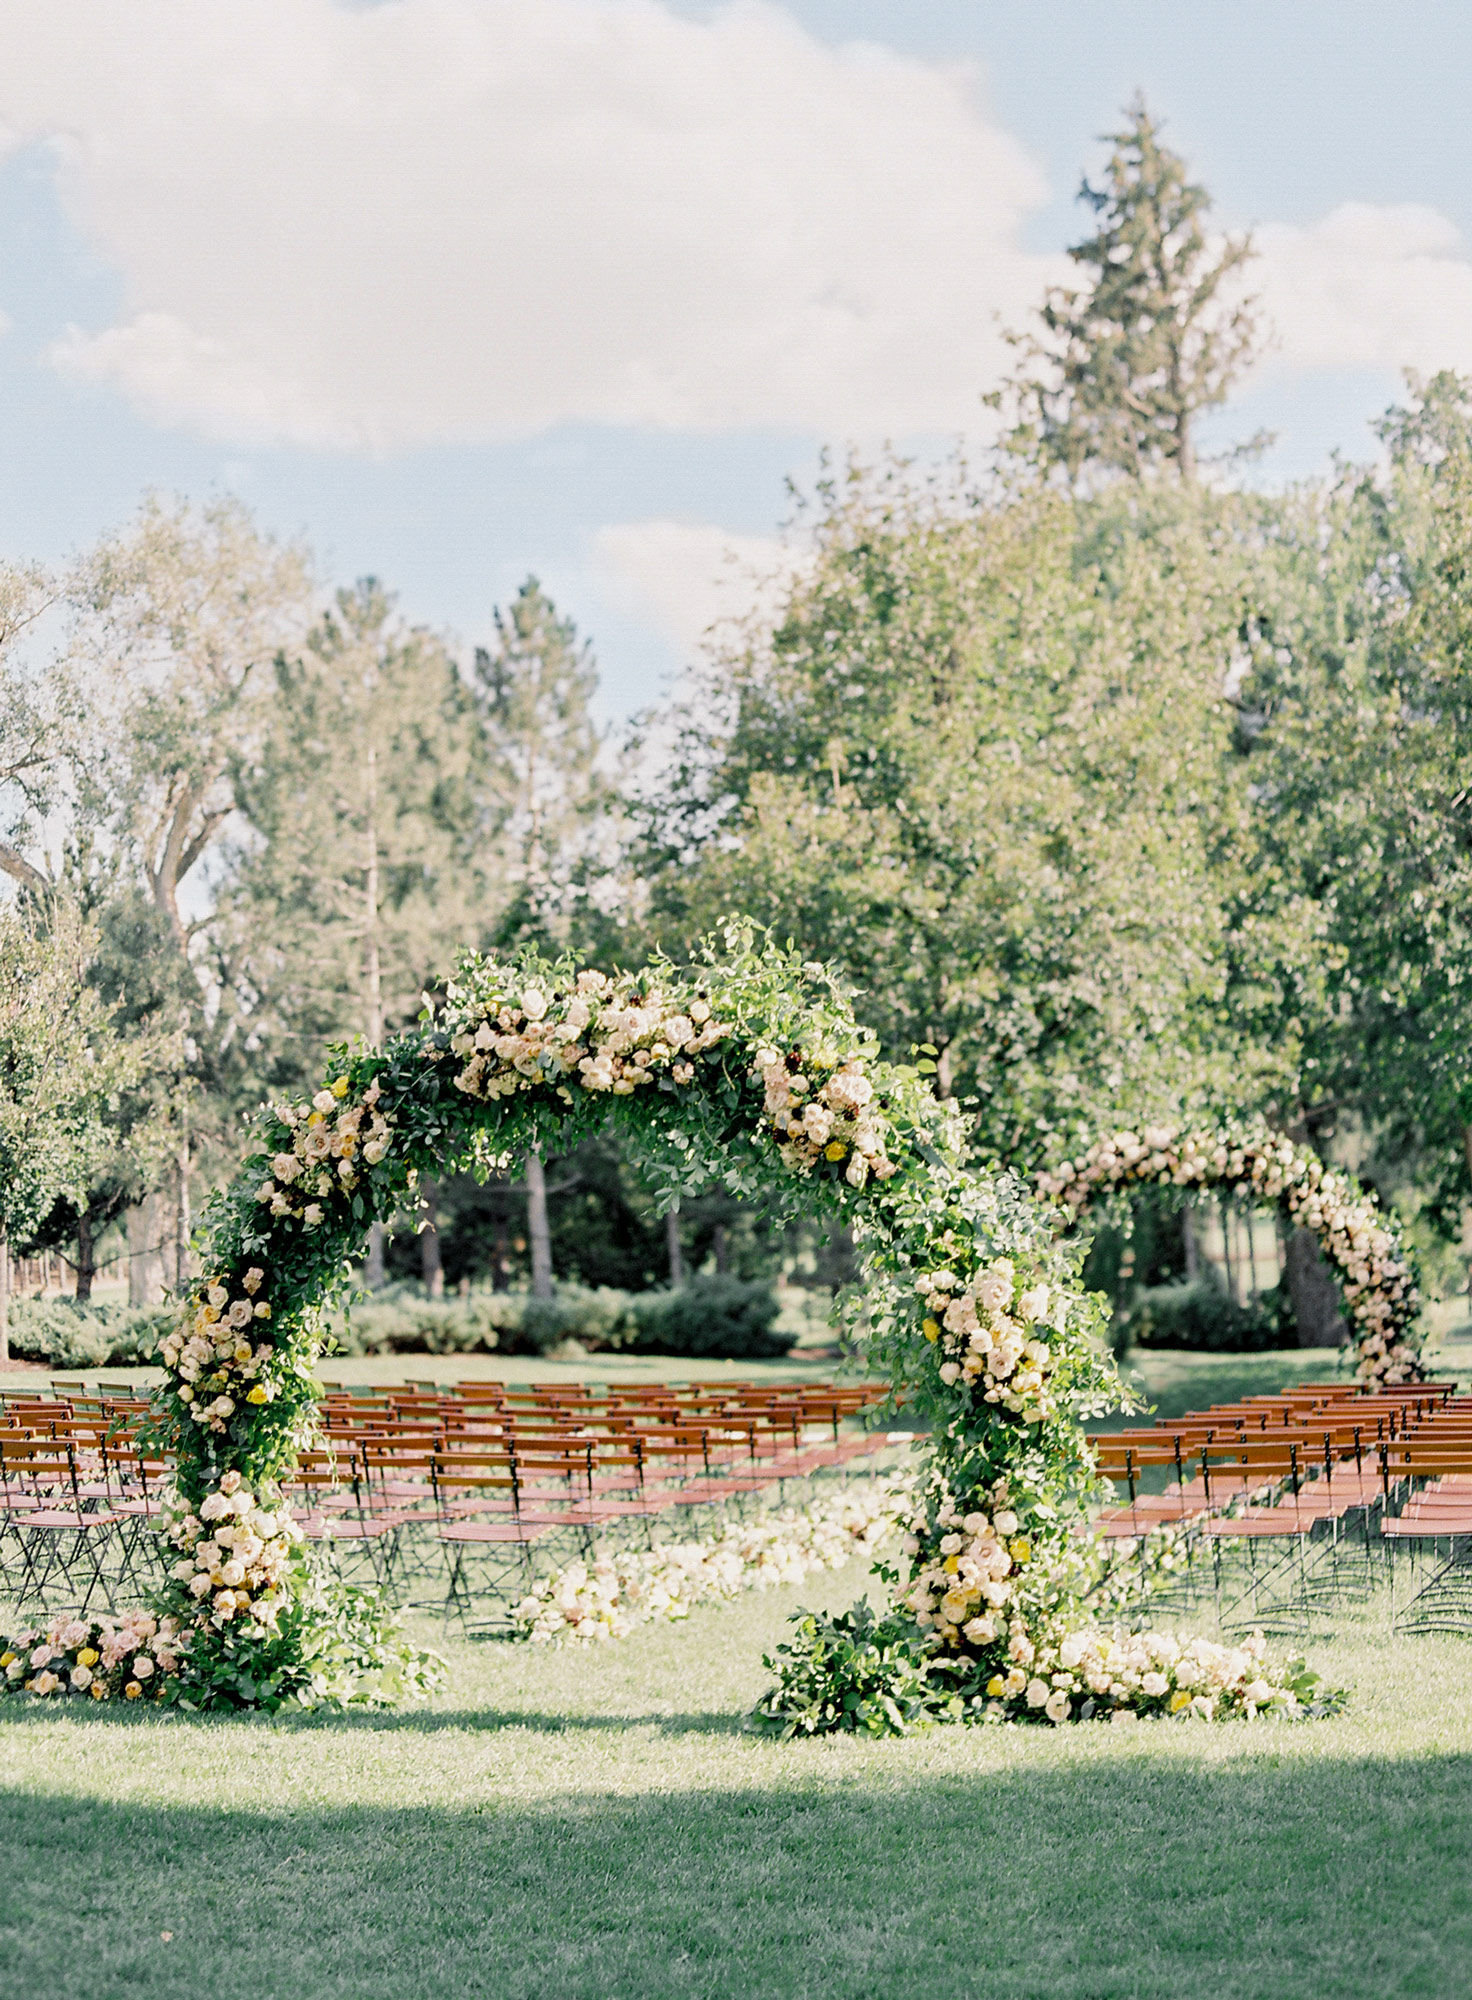 outdoor wedding ceremony space with floral arches